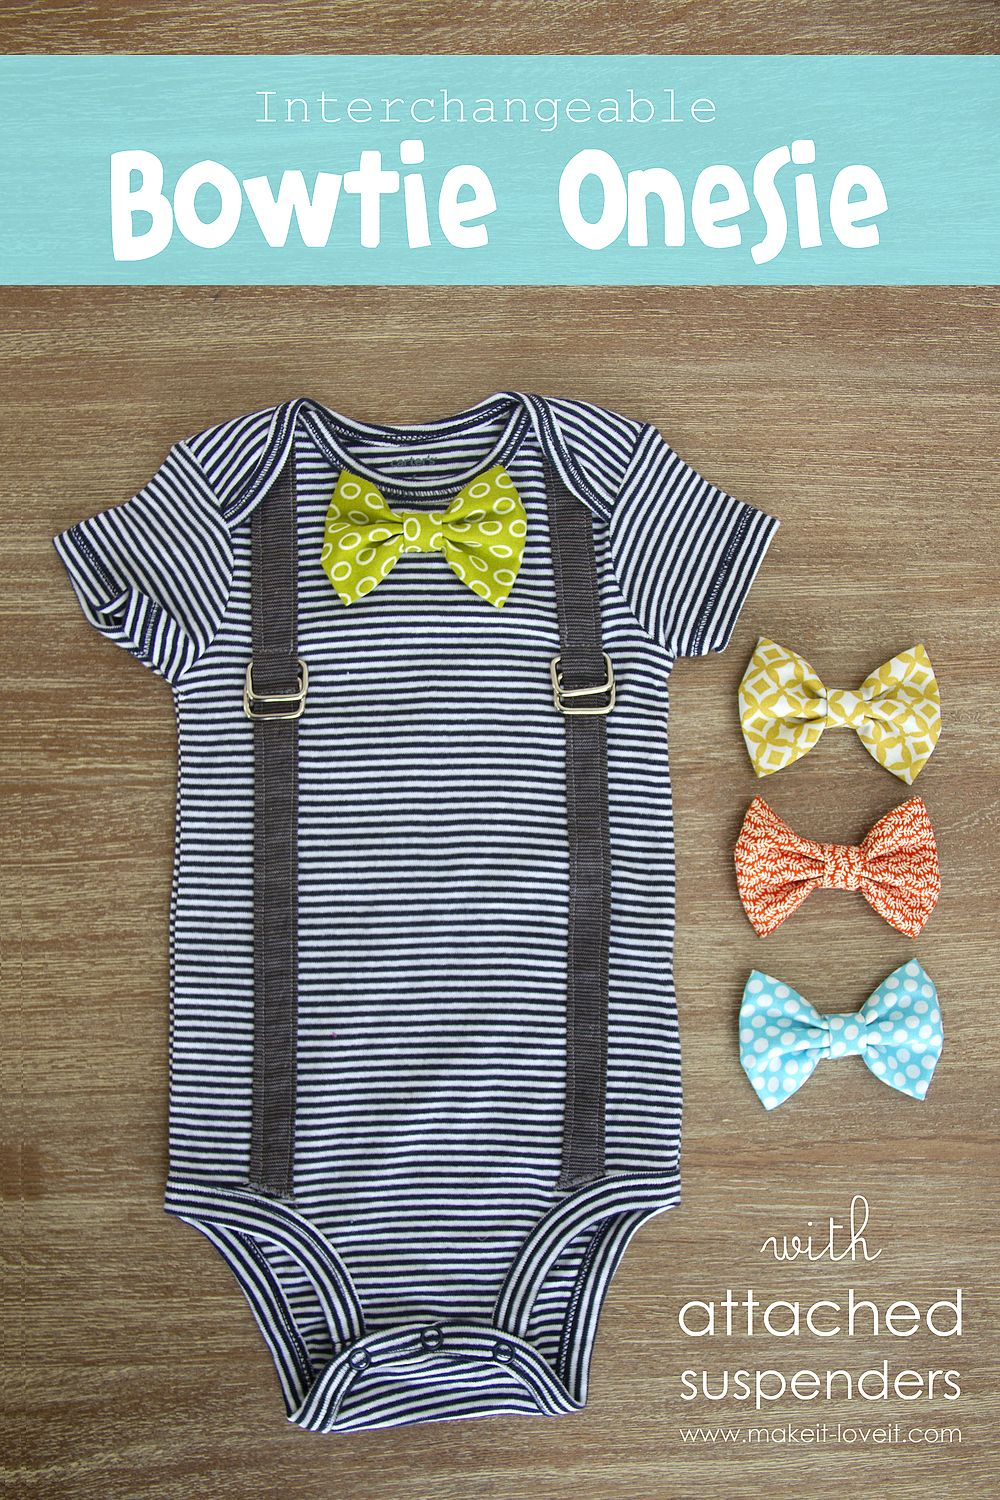 interchangeable bowtie onesie.with attached suspenders (2